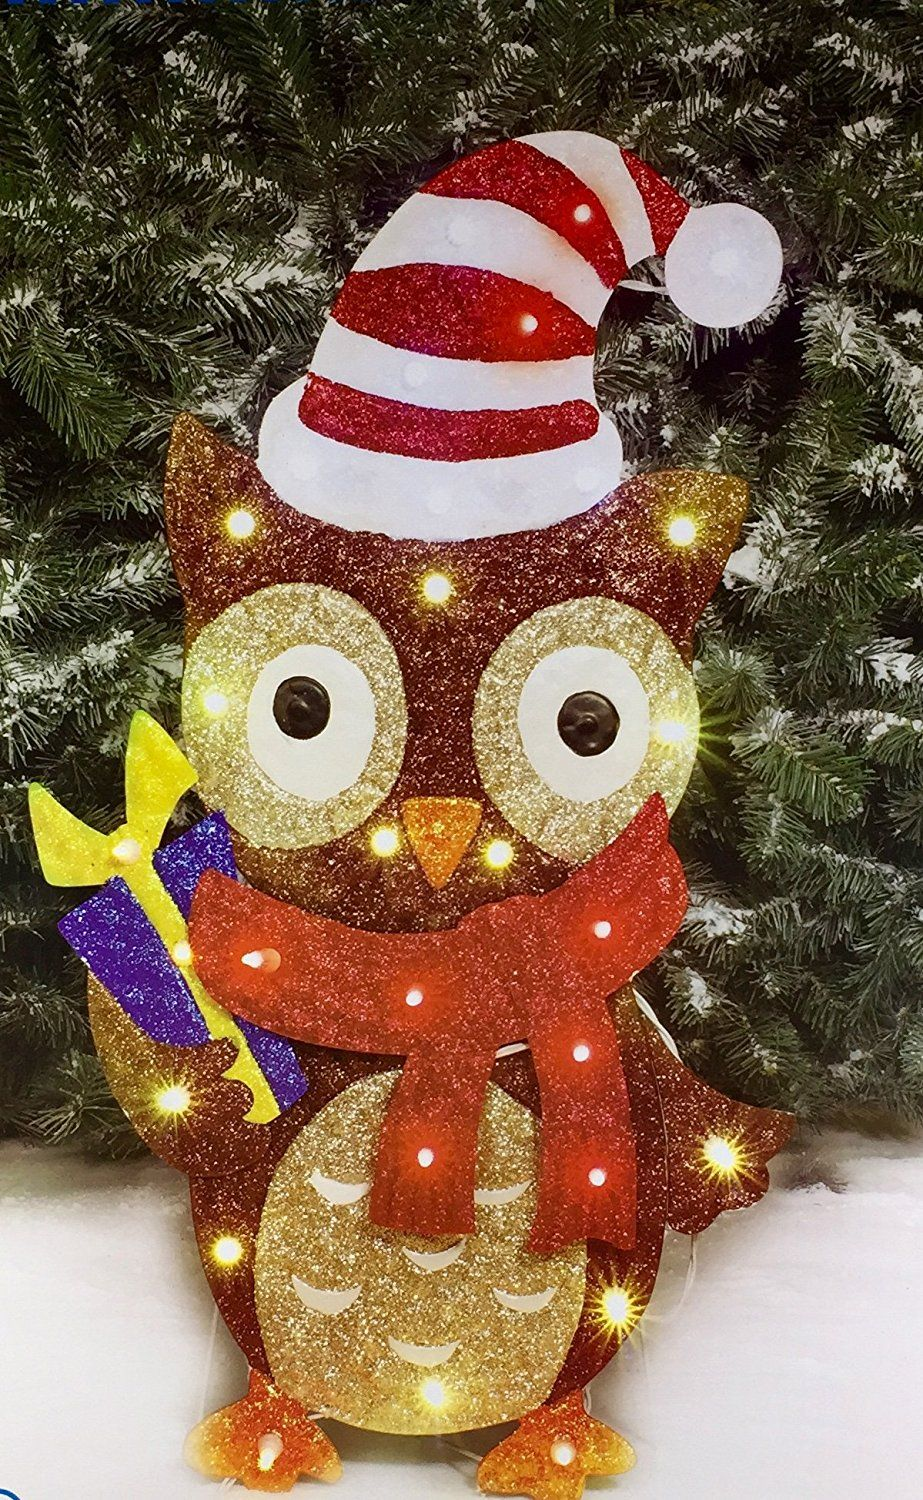 Amazon Com Holiday Time Light Up 28 Christmas Decoration Owl Cell Phones Accessories Light Up Christmas Decorations Christmas Decorations Holiday